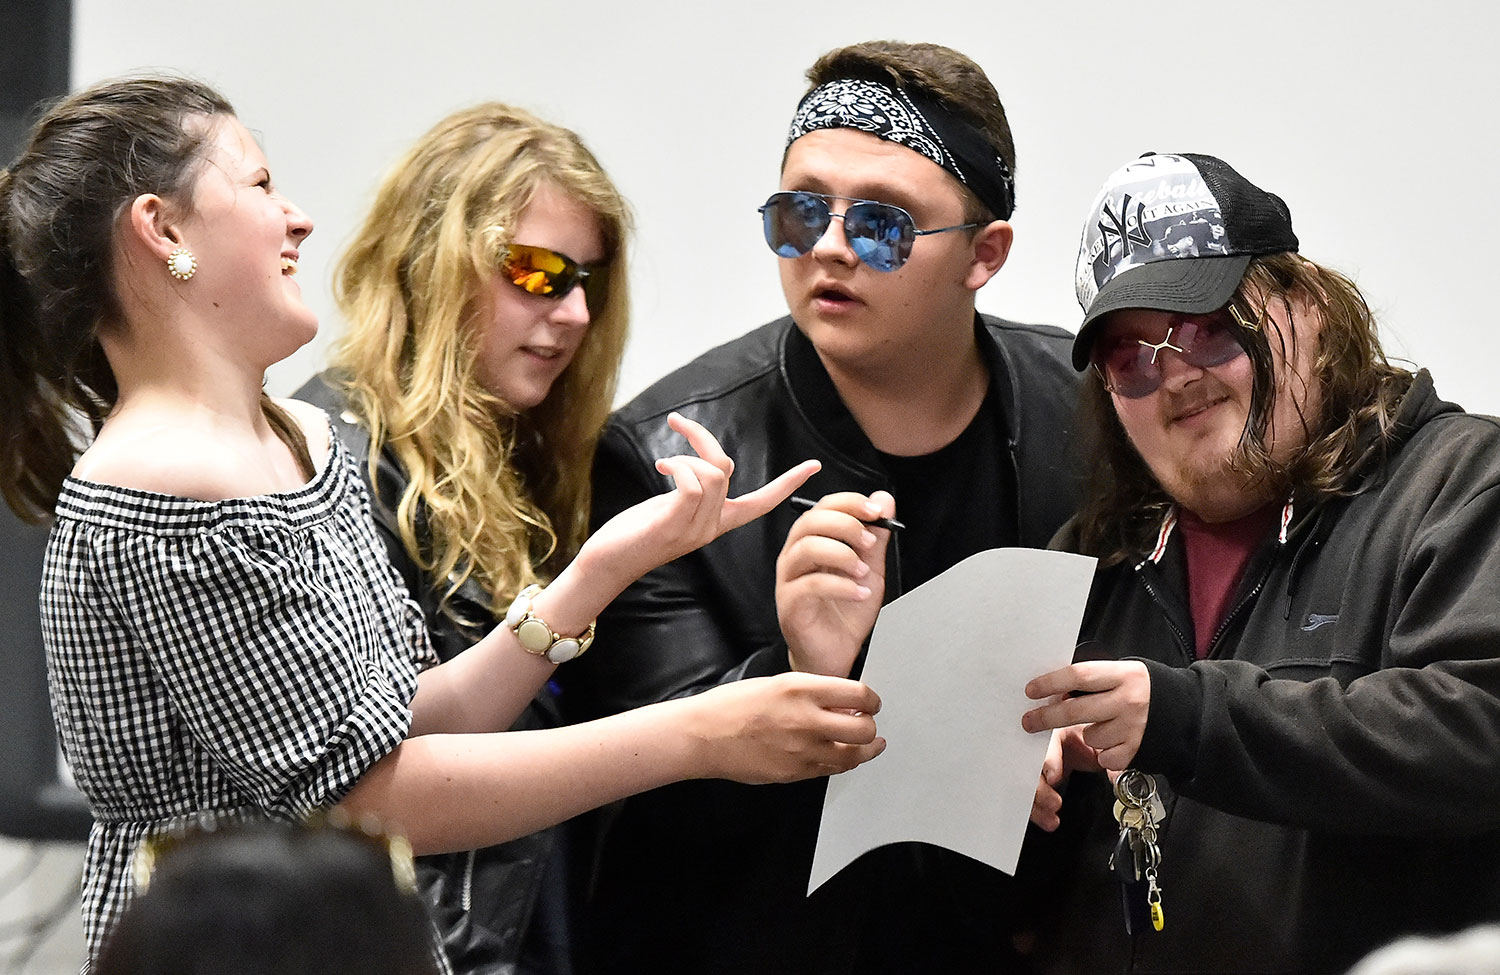 Four young people acting